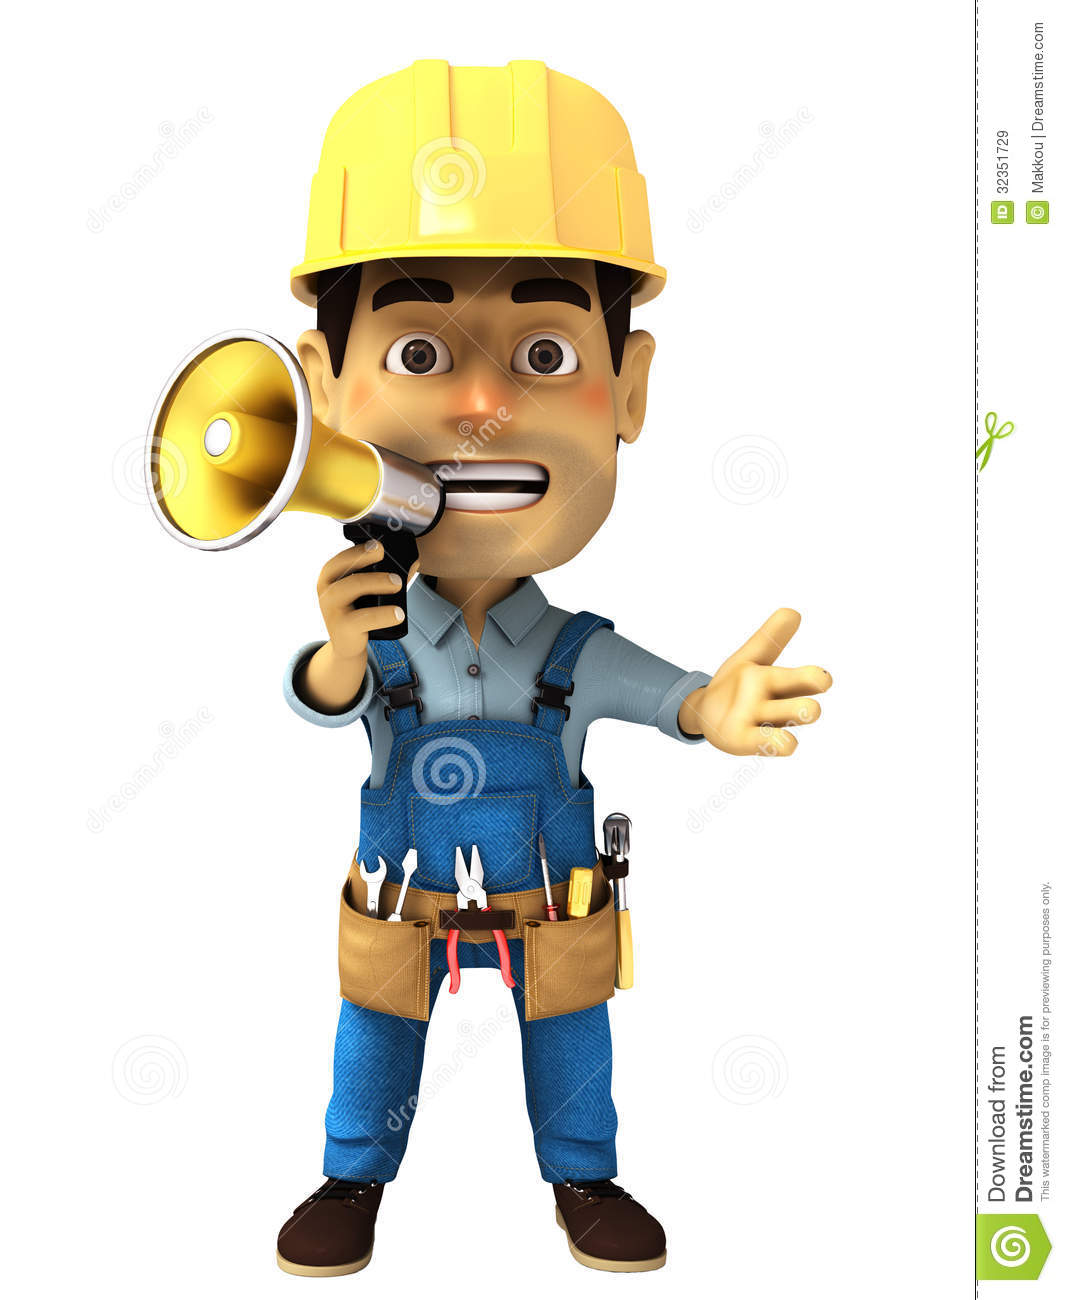 3d Handyman With Megaphone Stock Illustration. Image Of